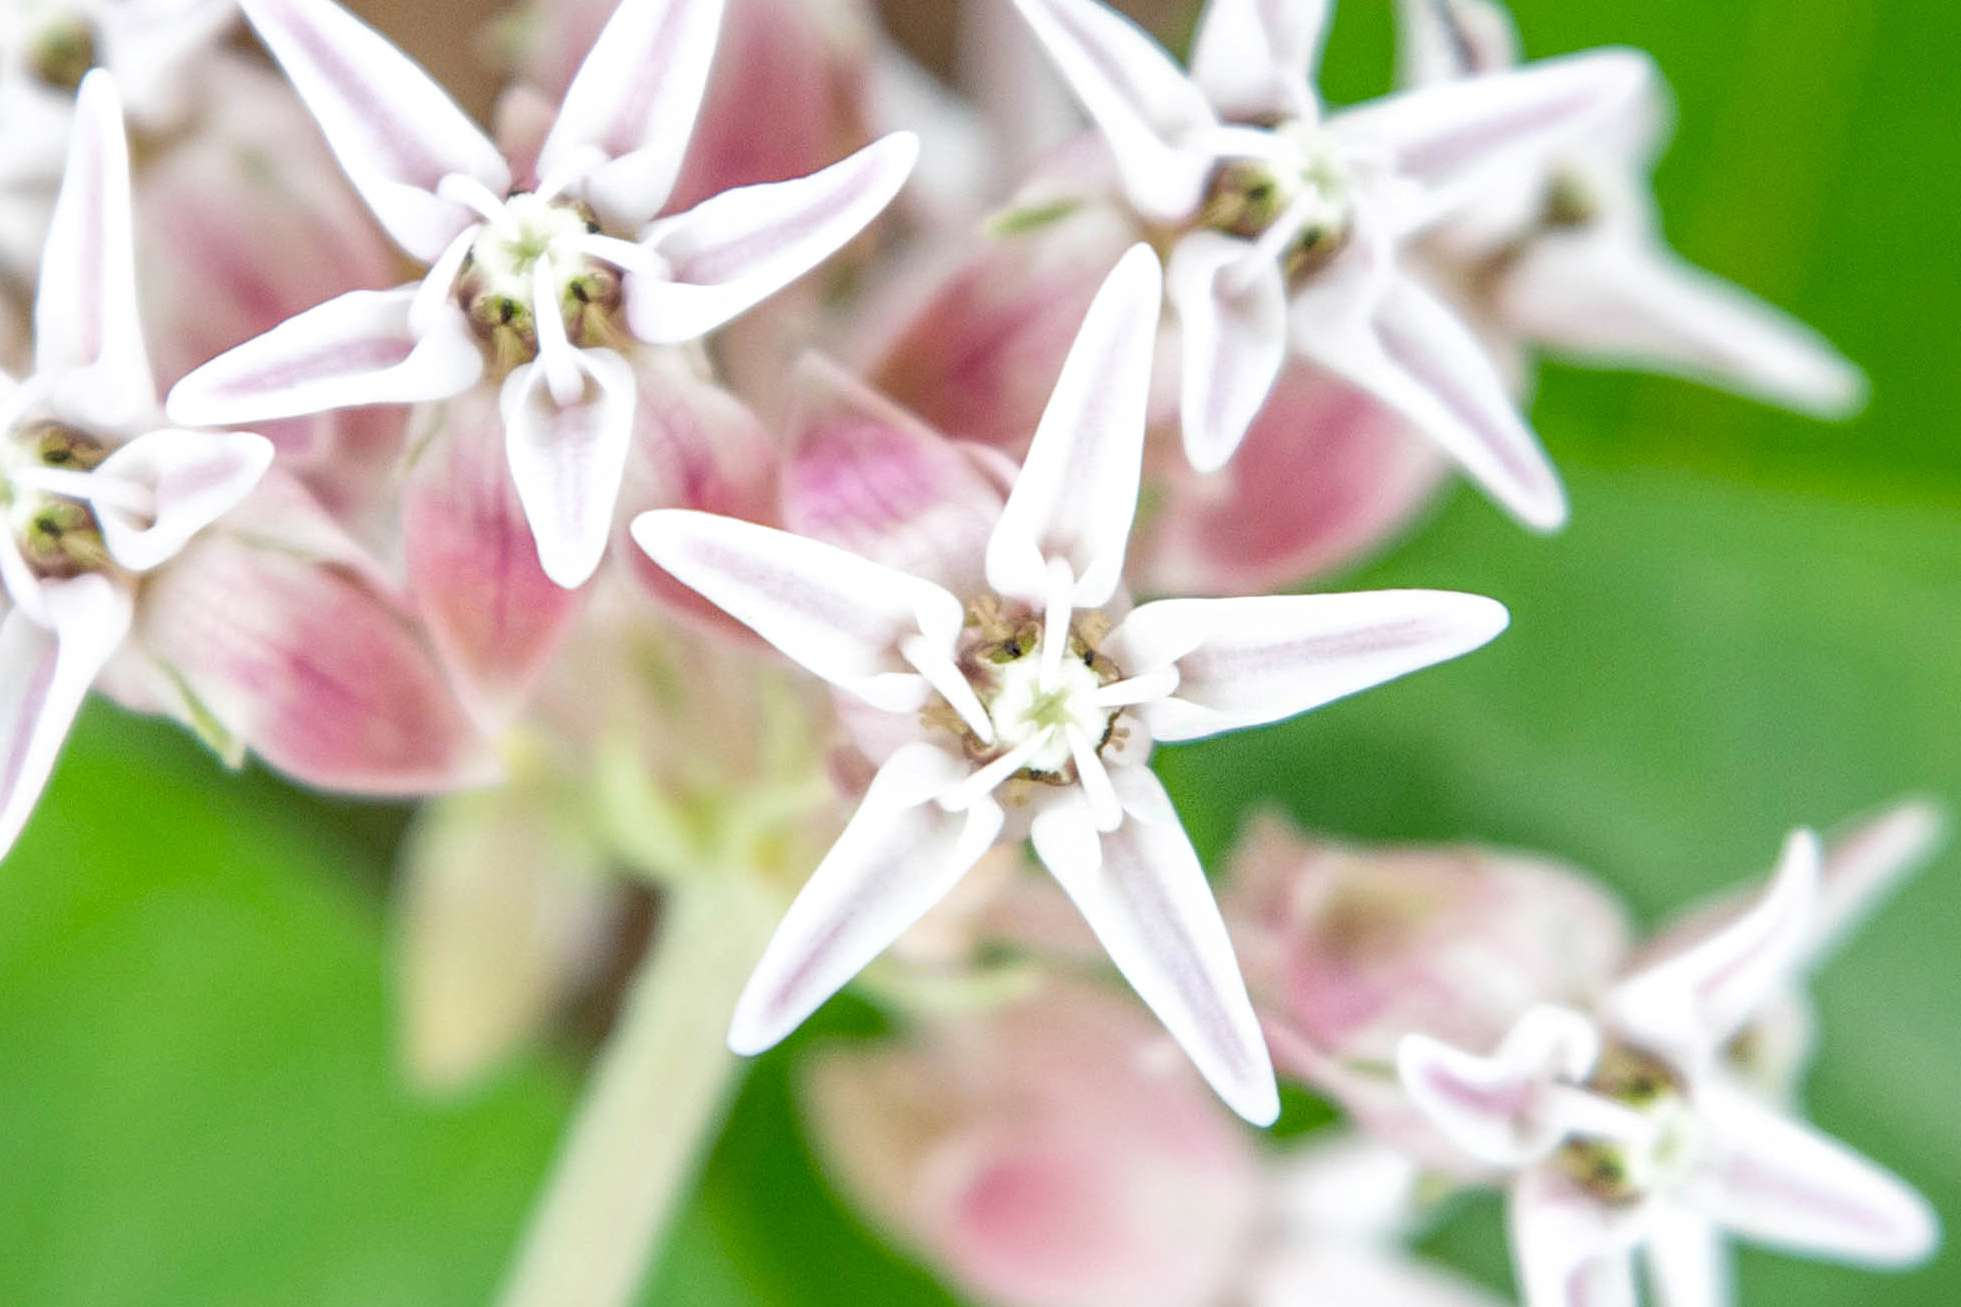 Showy milkweed with white star-shaped flowers clustered together closeup